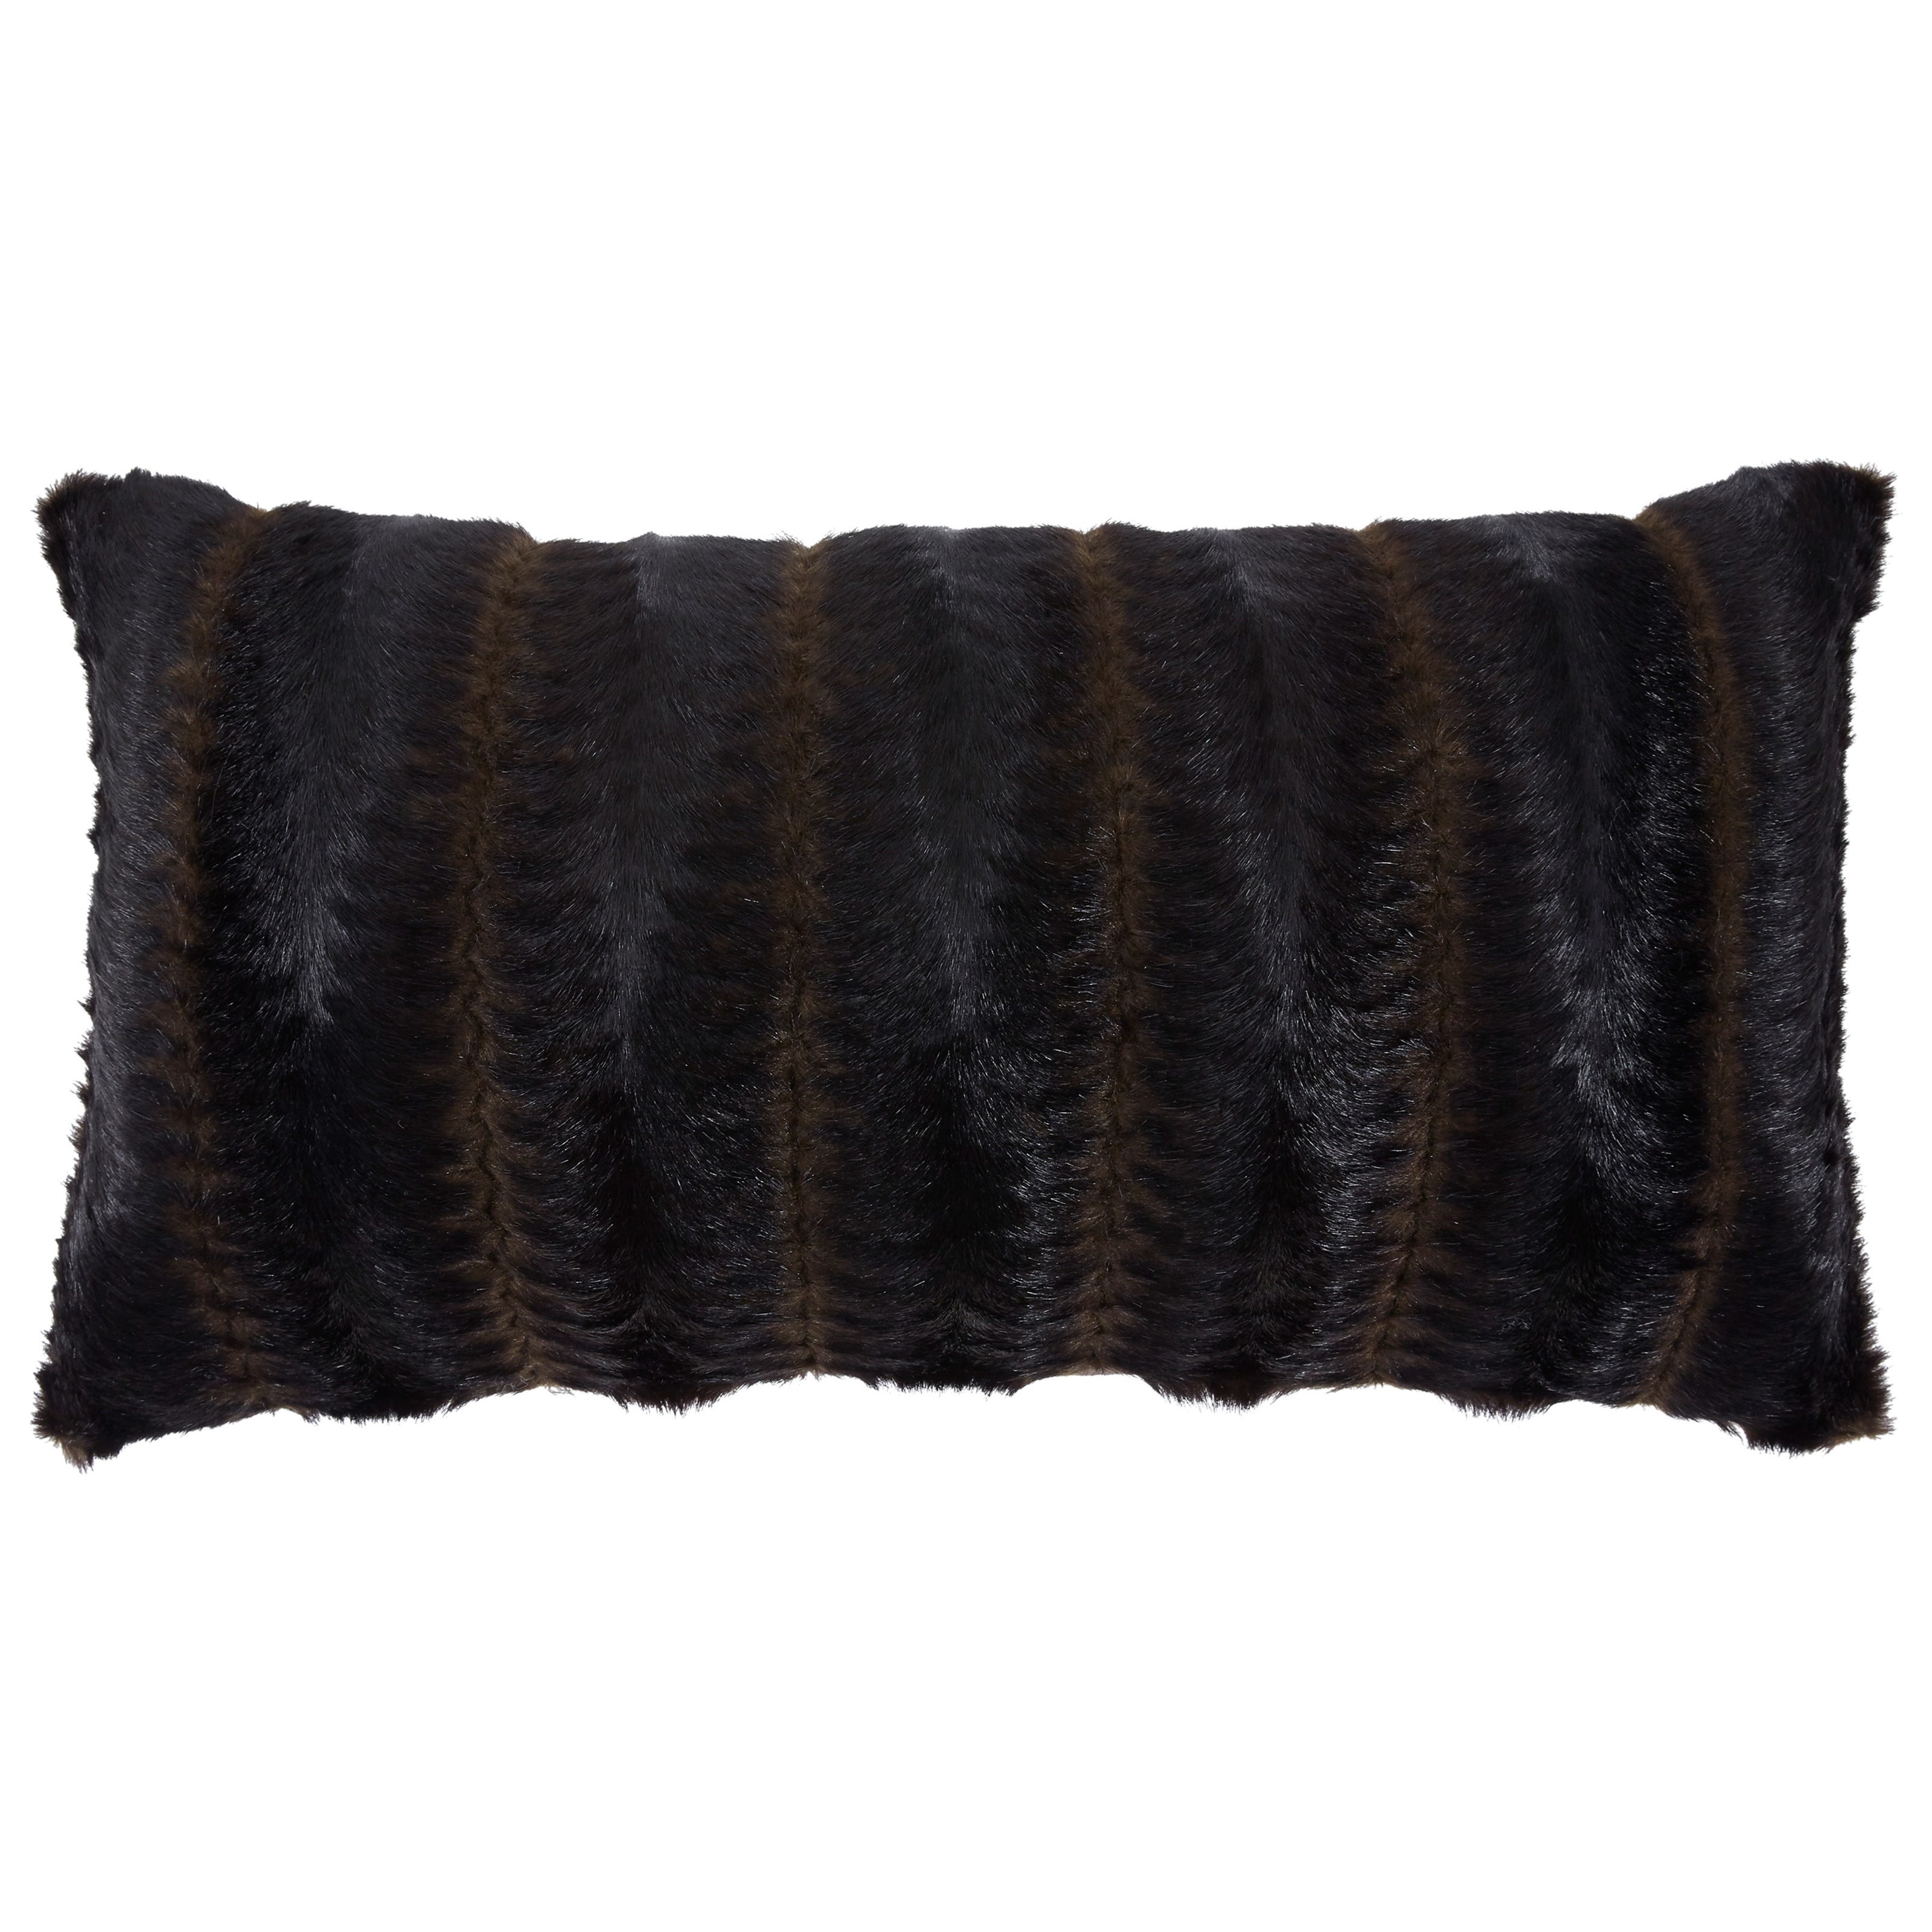 Pillows Elvena Brown/Black Faux Fur Pillow by Signature Design by Ashley at Northeast Factory Direct